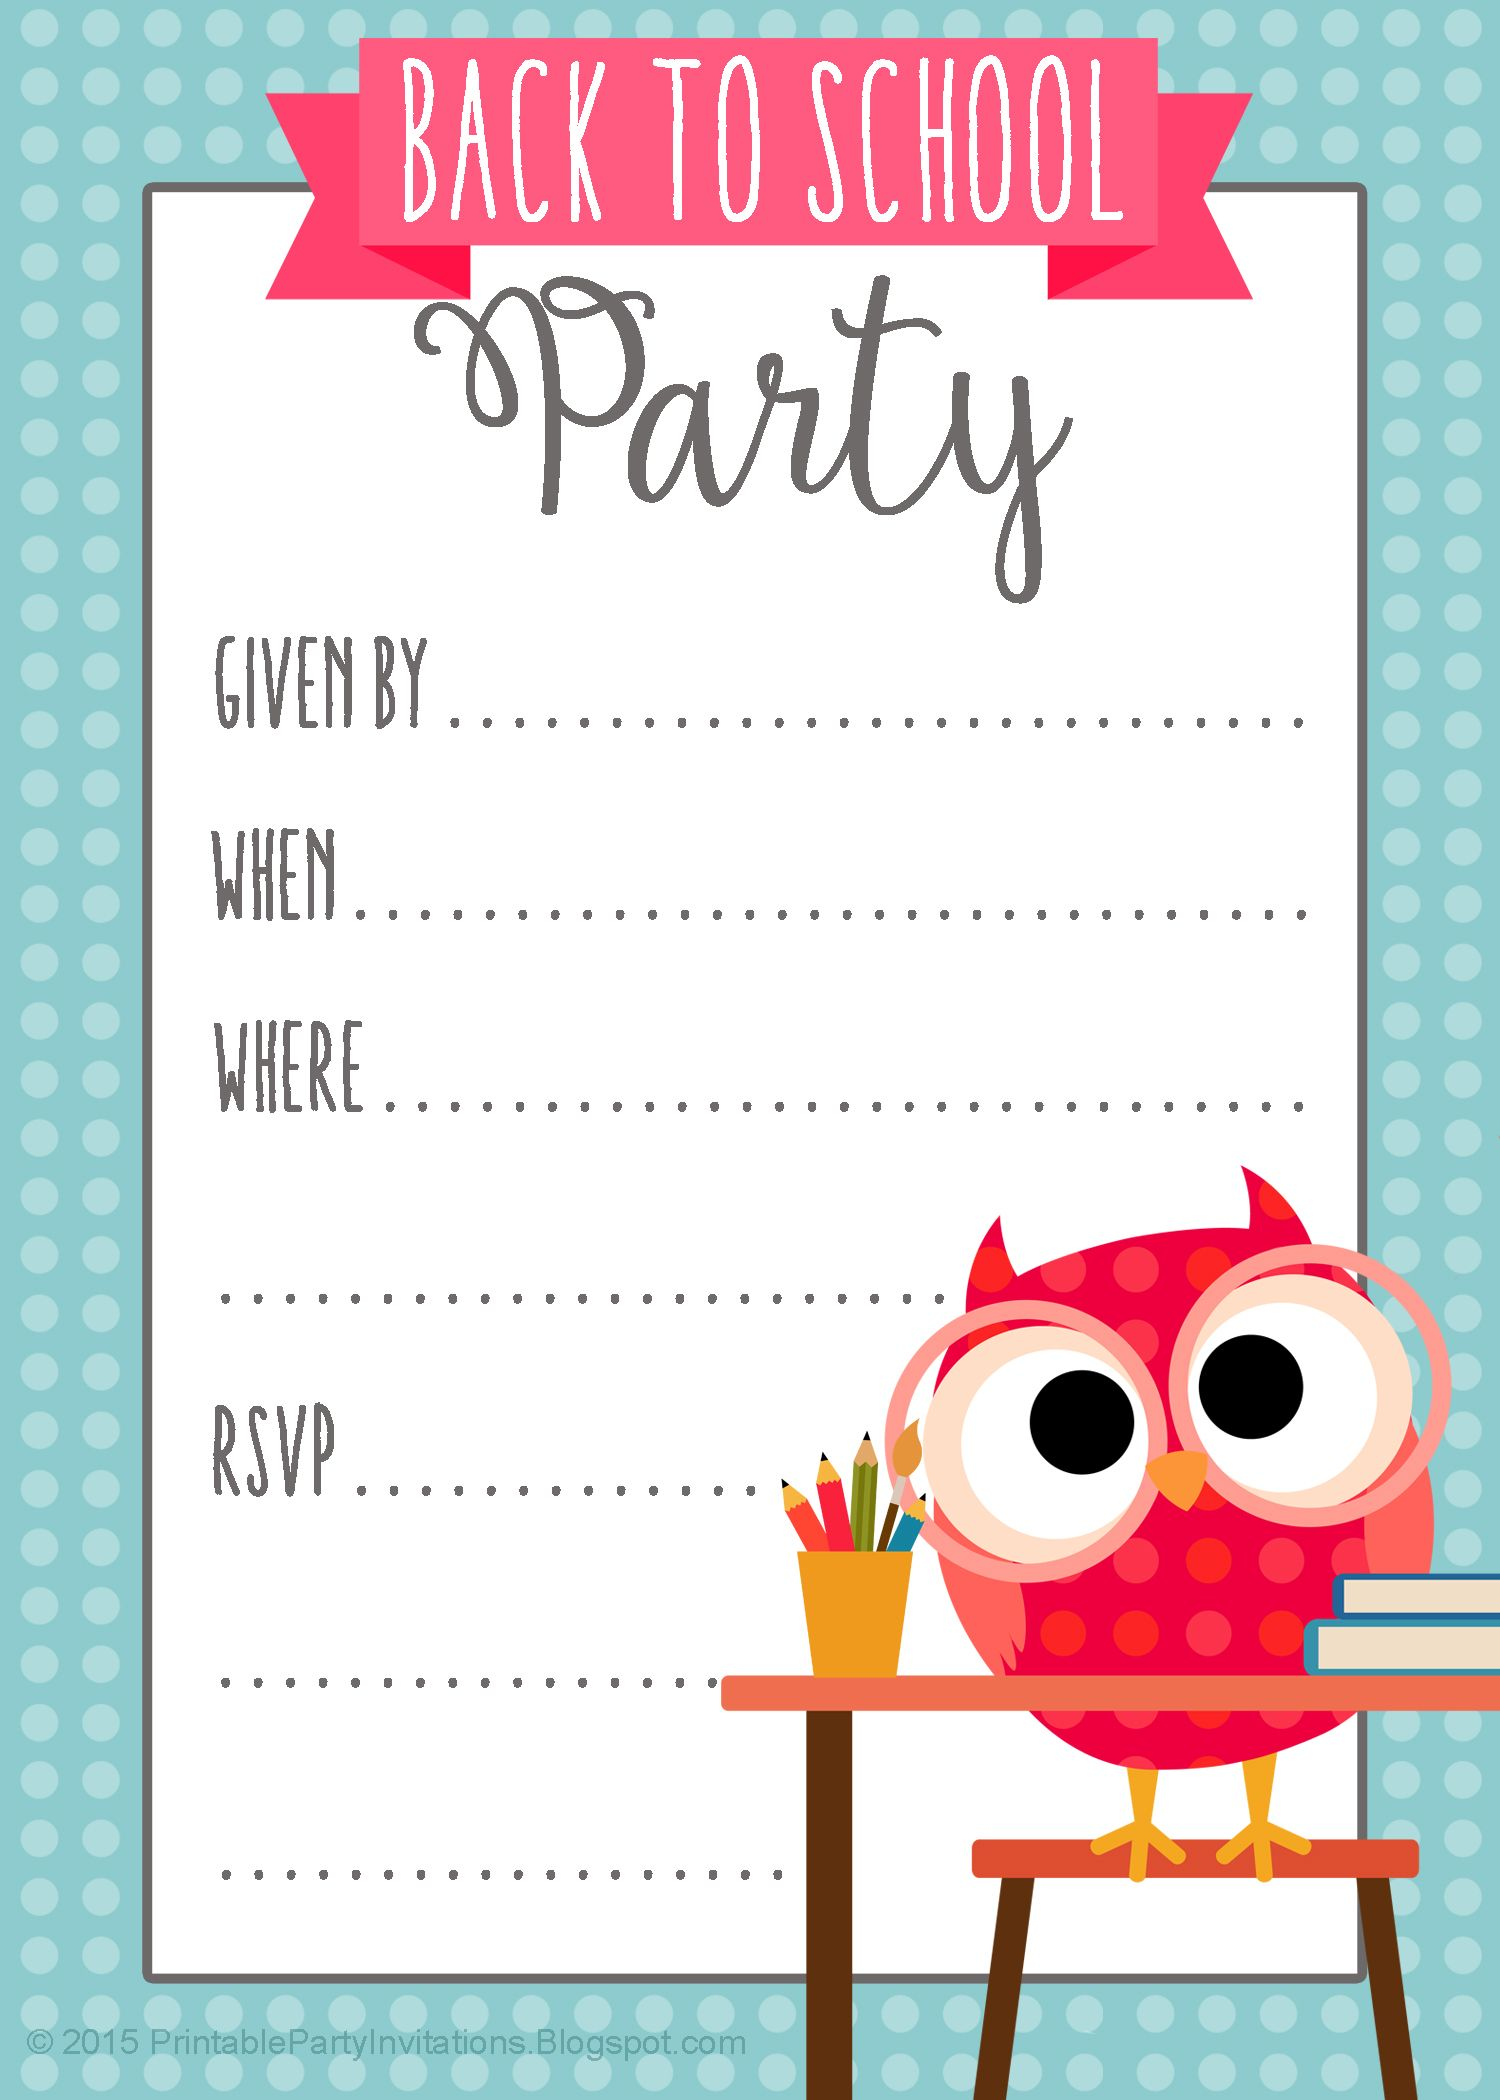 FREE Printable Back to School Party Invitation Party